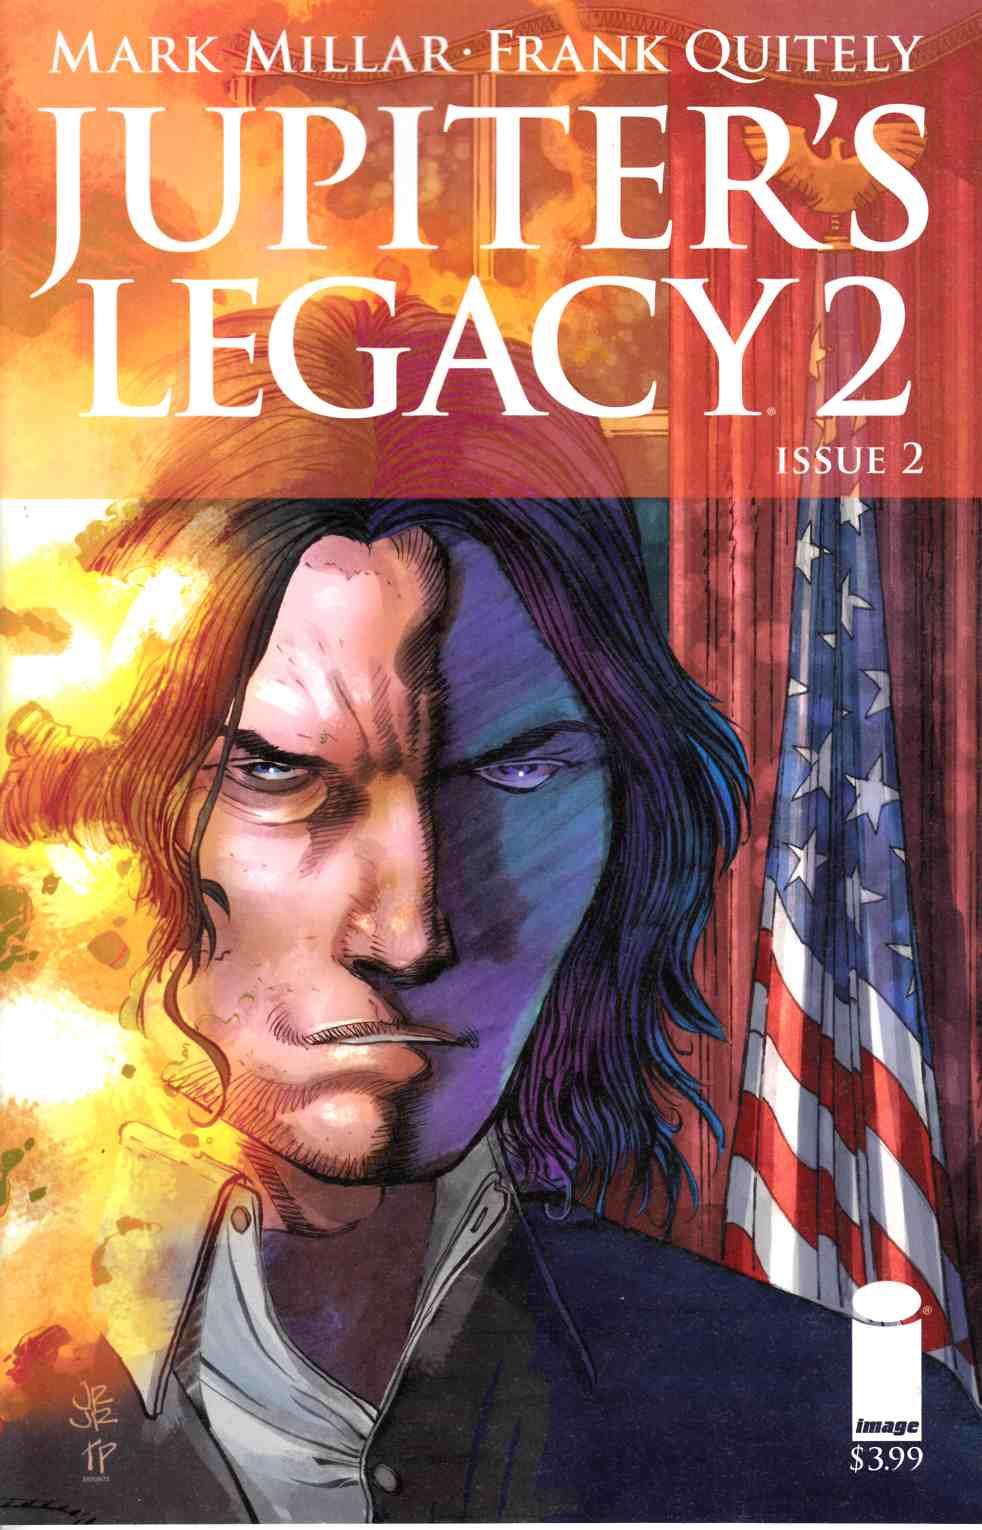 Jupiters Legacy Vol 2 #2 Cover B [Image Comic] THUMBNAIL